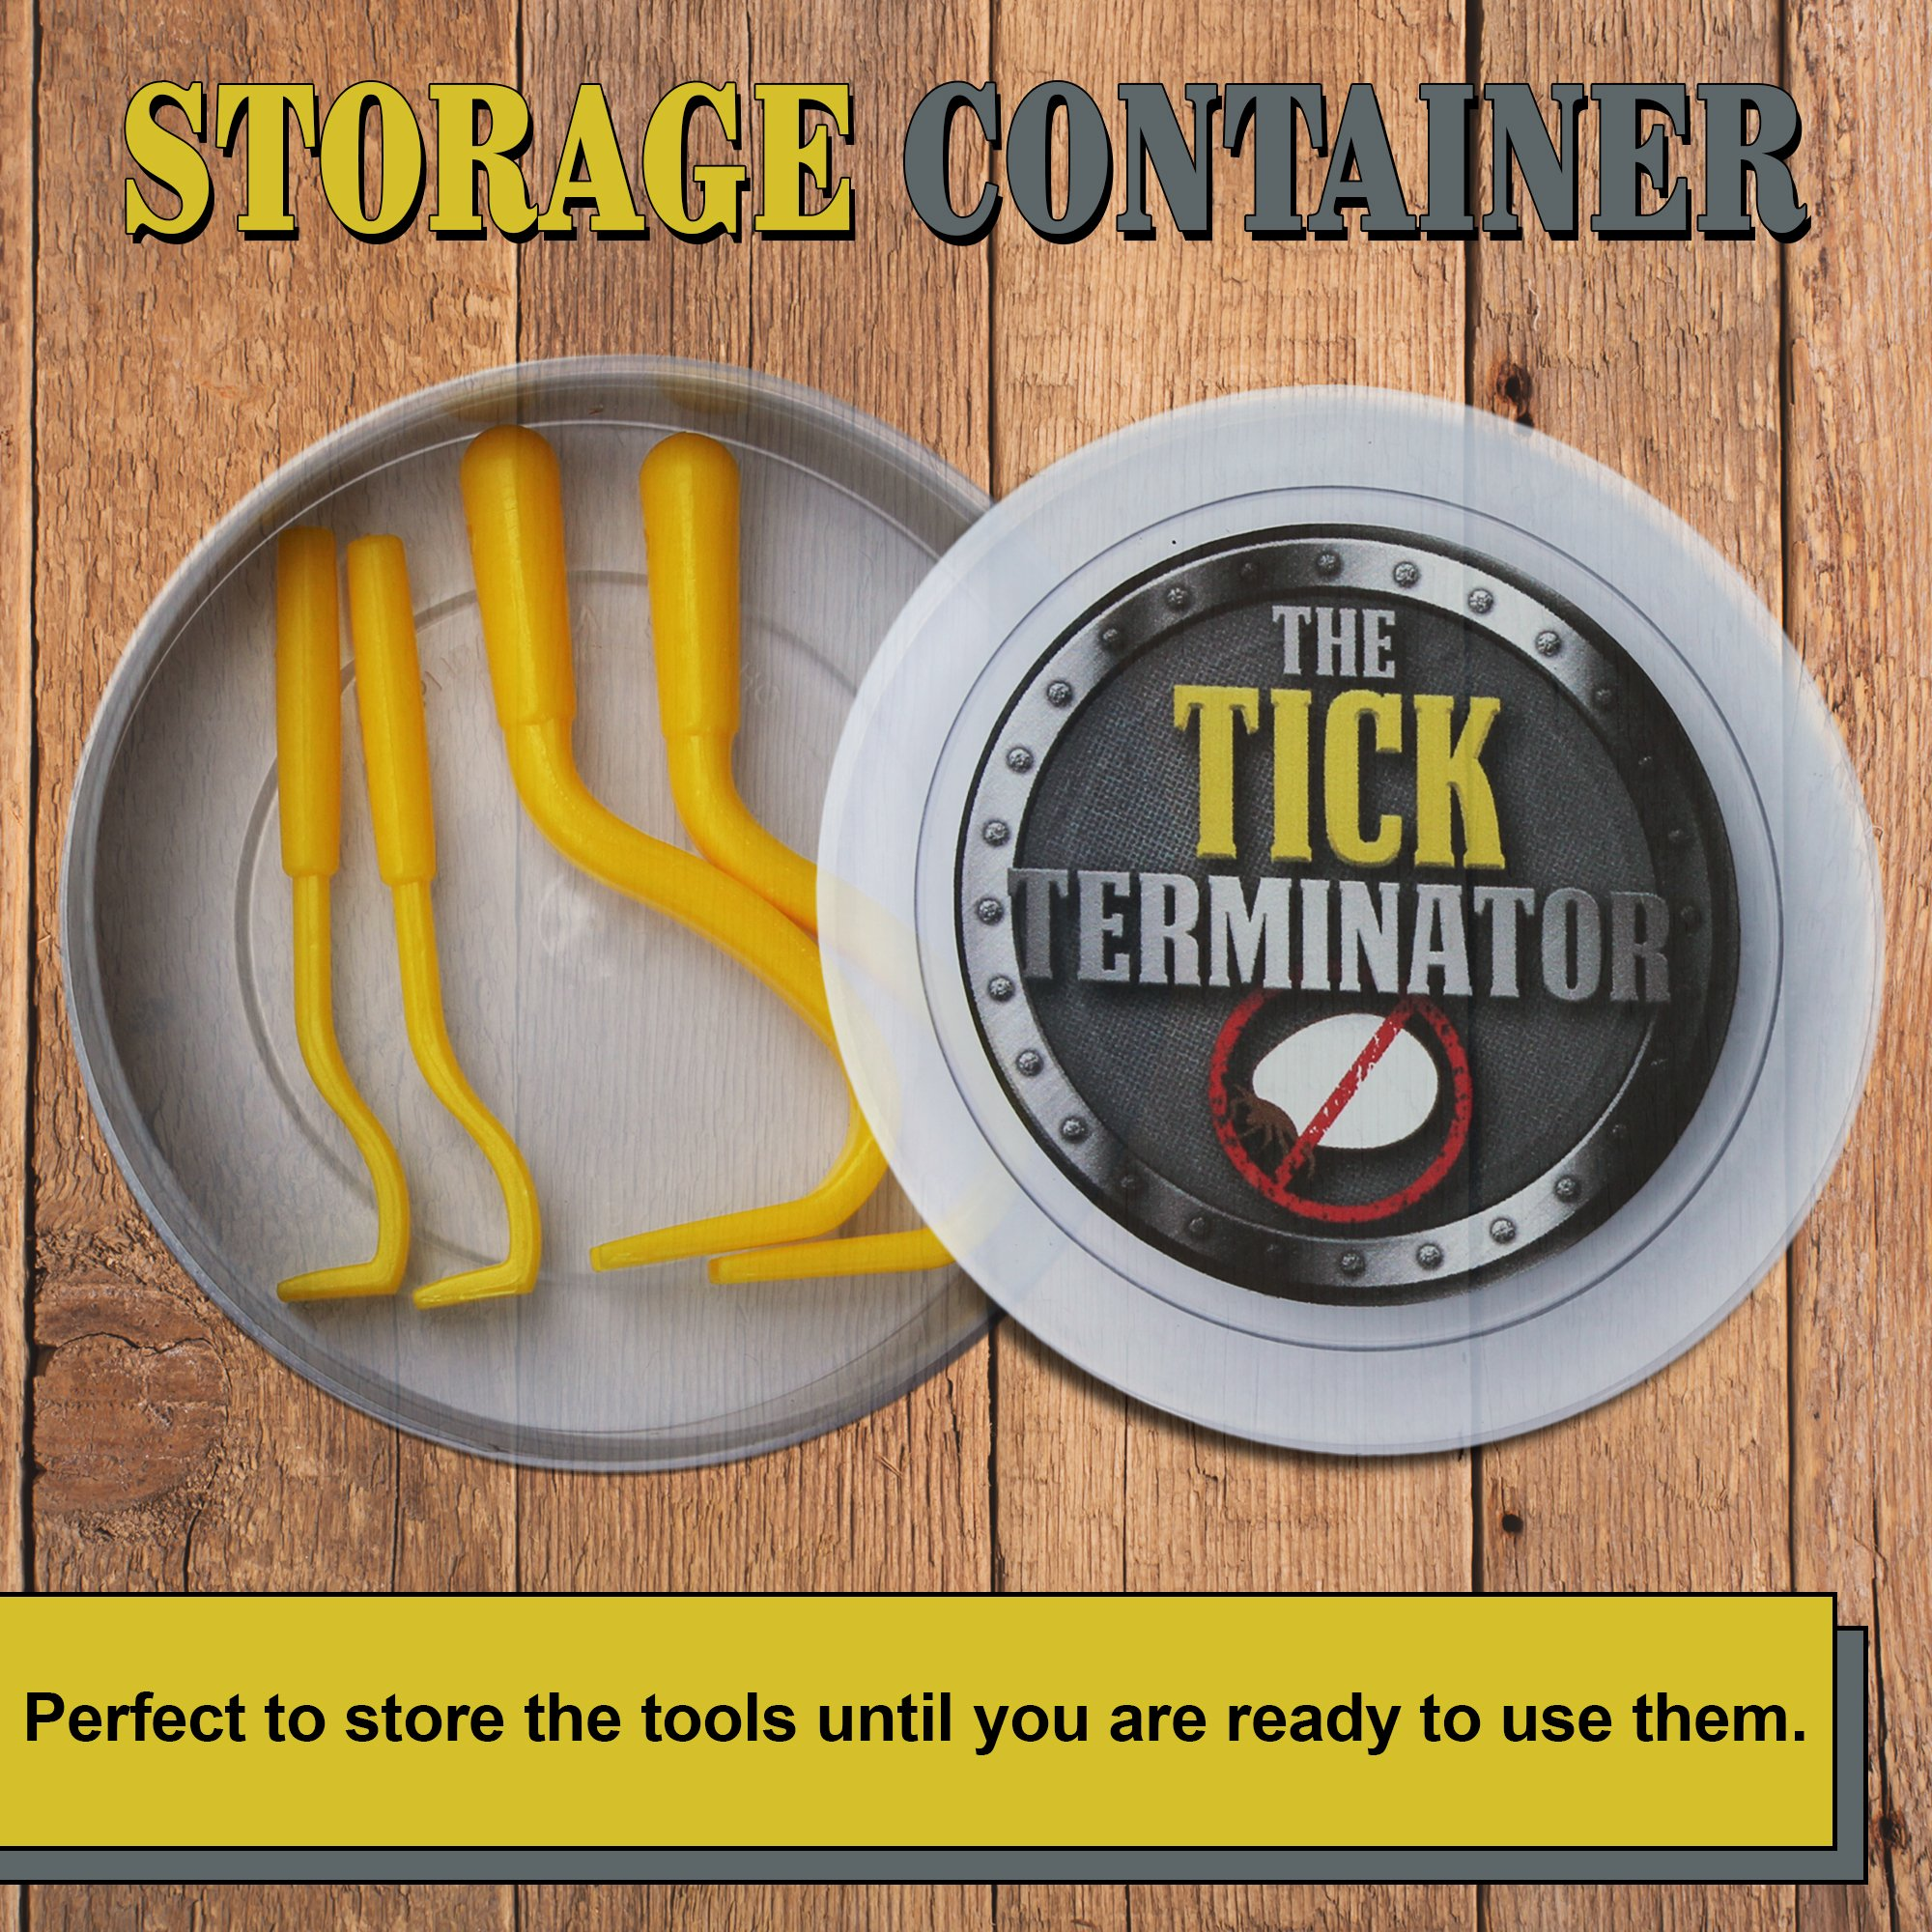 4 Complete Sets of Tick Terminator Remover Hooks with Storage Container, Removes The Whole Tick Safely using a Large or Small Twisting Tools